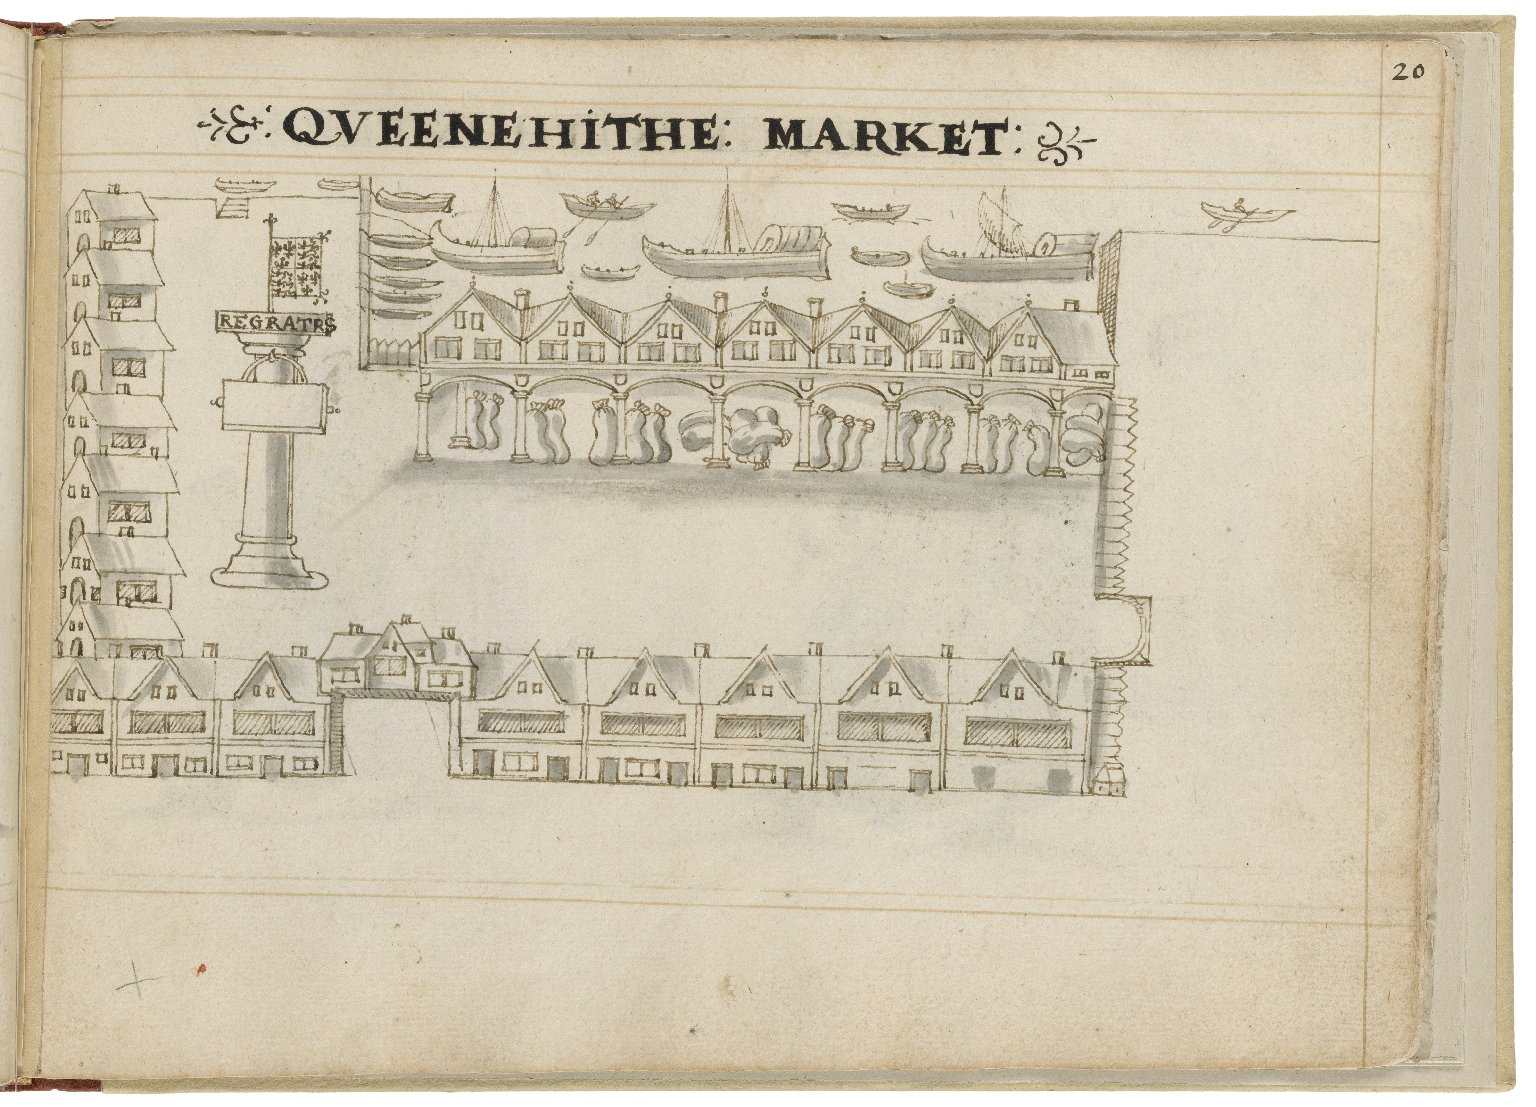 Drawing of Queenhithe by Hugh Alley. Image courtesy of the Folger Digital Image Collection.